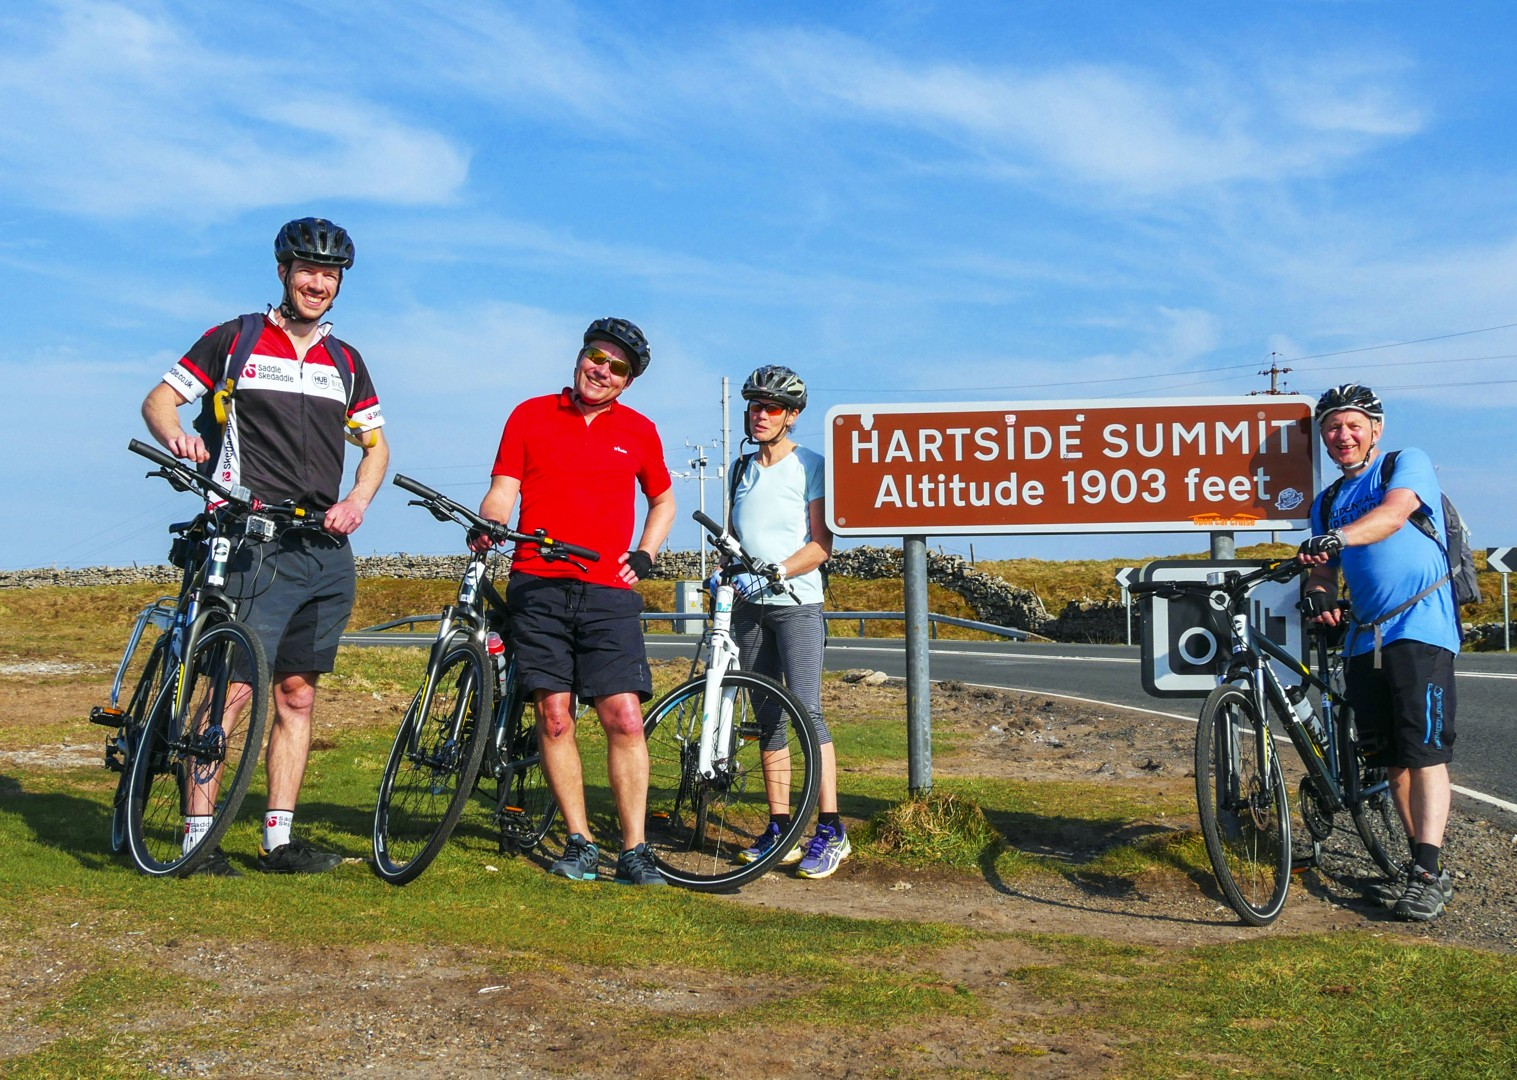 hartside-summit-cycling-uk-c2c-group-holiday.jpg - UK - C2C - Coast to Coast - Supported Leisure Cycling Holiday - Leisure Cycling